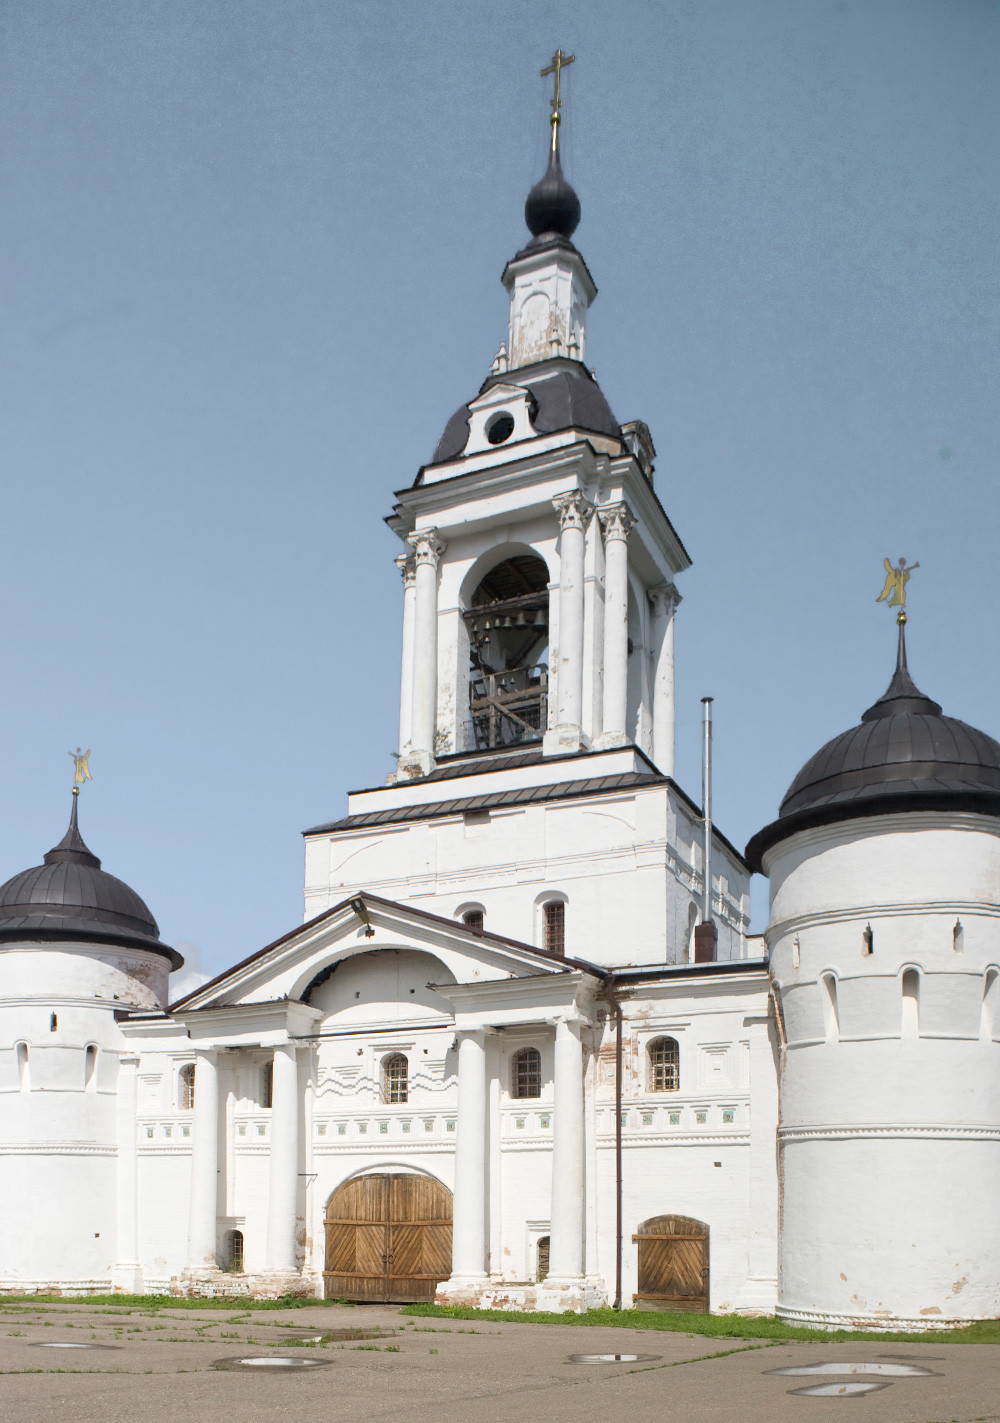 St. Avraamy Epiphany Monastery. Church of St. Nicholas over Holy Gate, west view. July 6, 2019